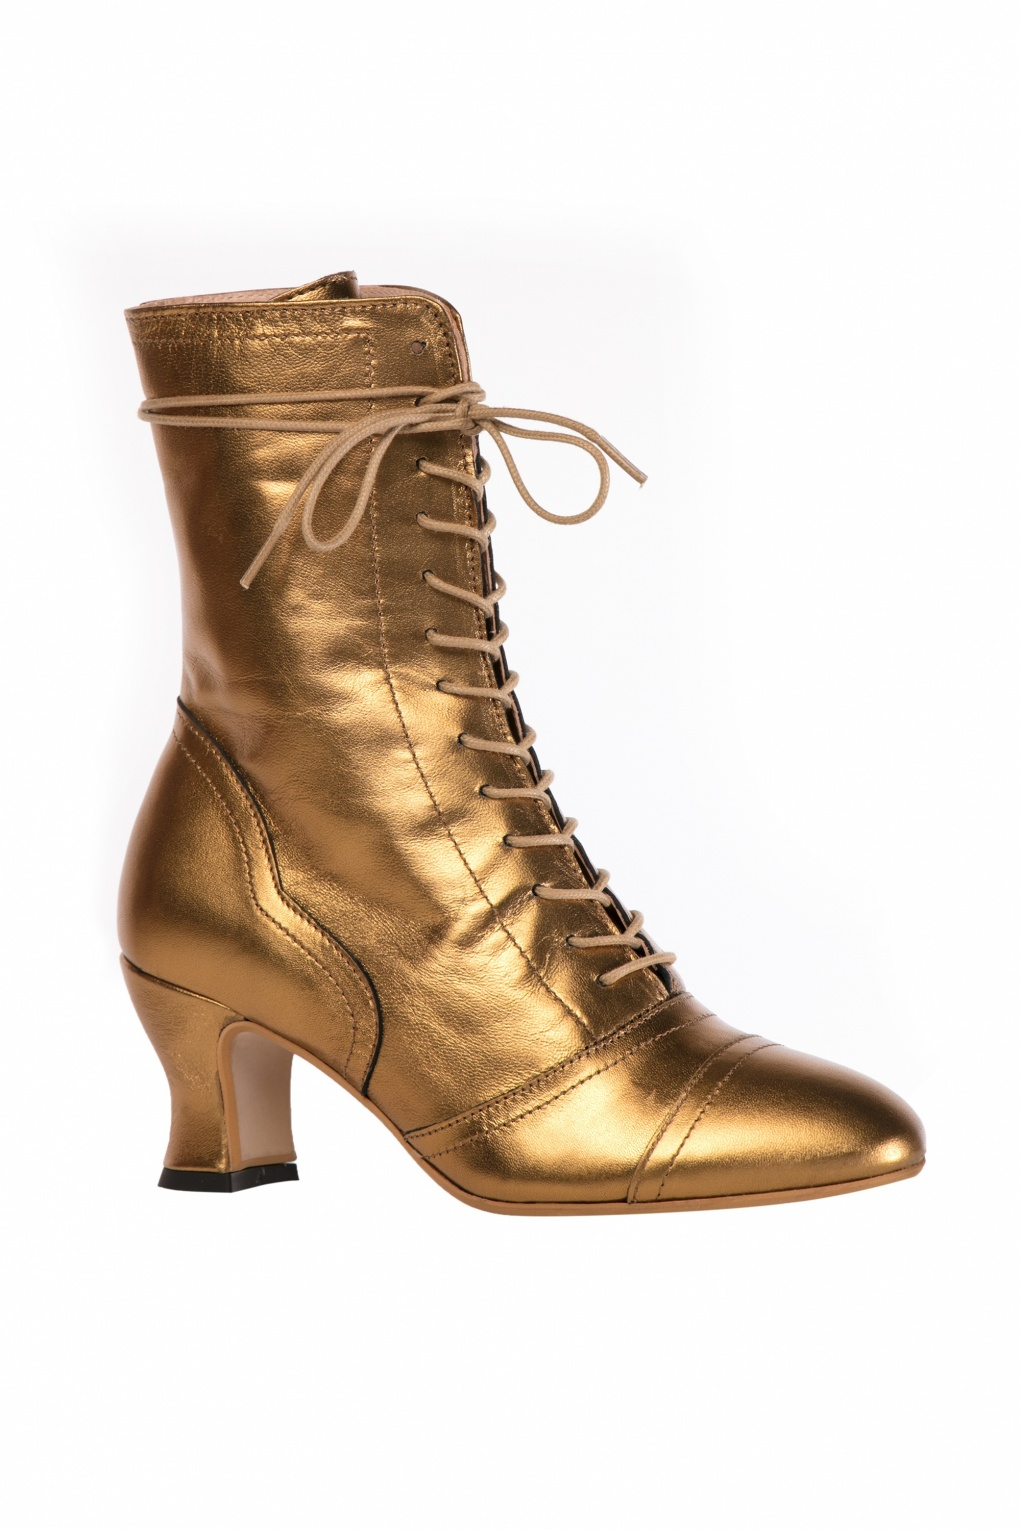 Miss L Fire 40s Frida Lace Up Booties in Gold